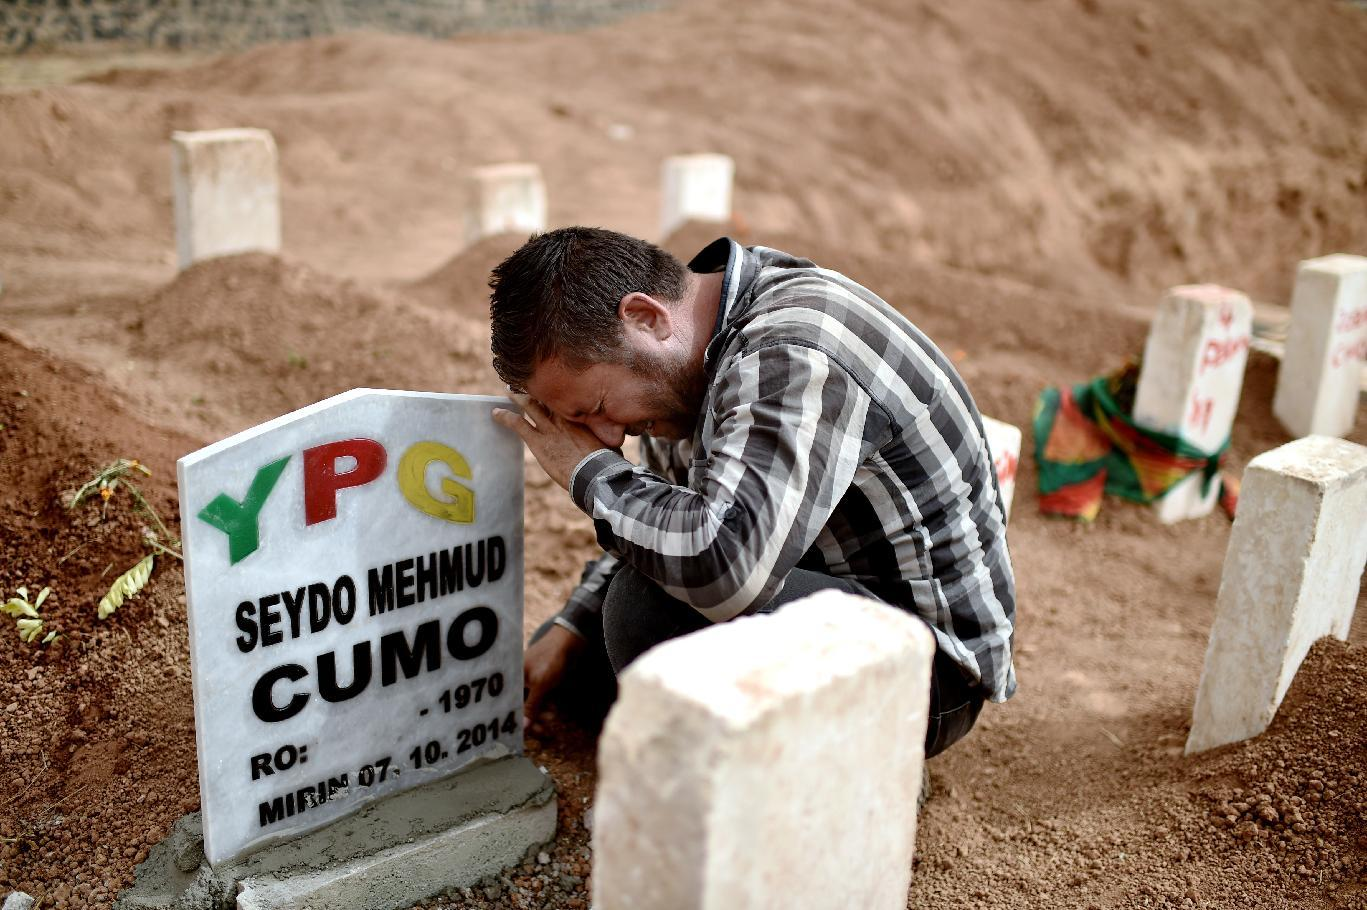 Mourners attend a funeral of fighters from the Syrian Kurdish People's Protection Units (YPG), fighting against the Islamic State group, on October 11, 2014 in the Turkish town of Suruc (AFP Photo/Aris Messinis)